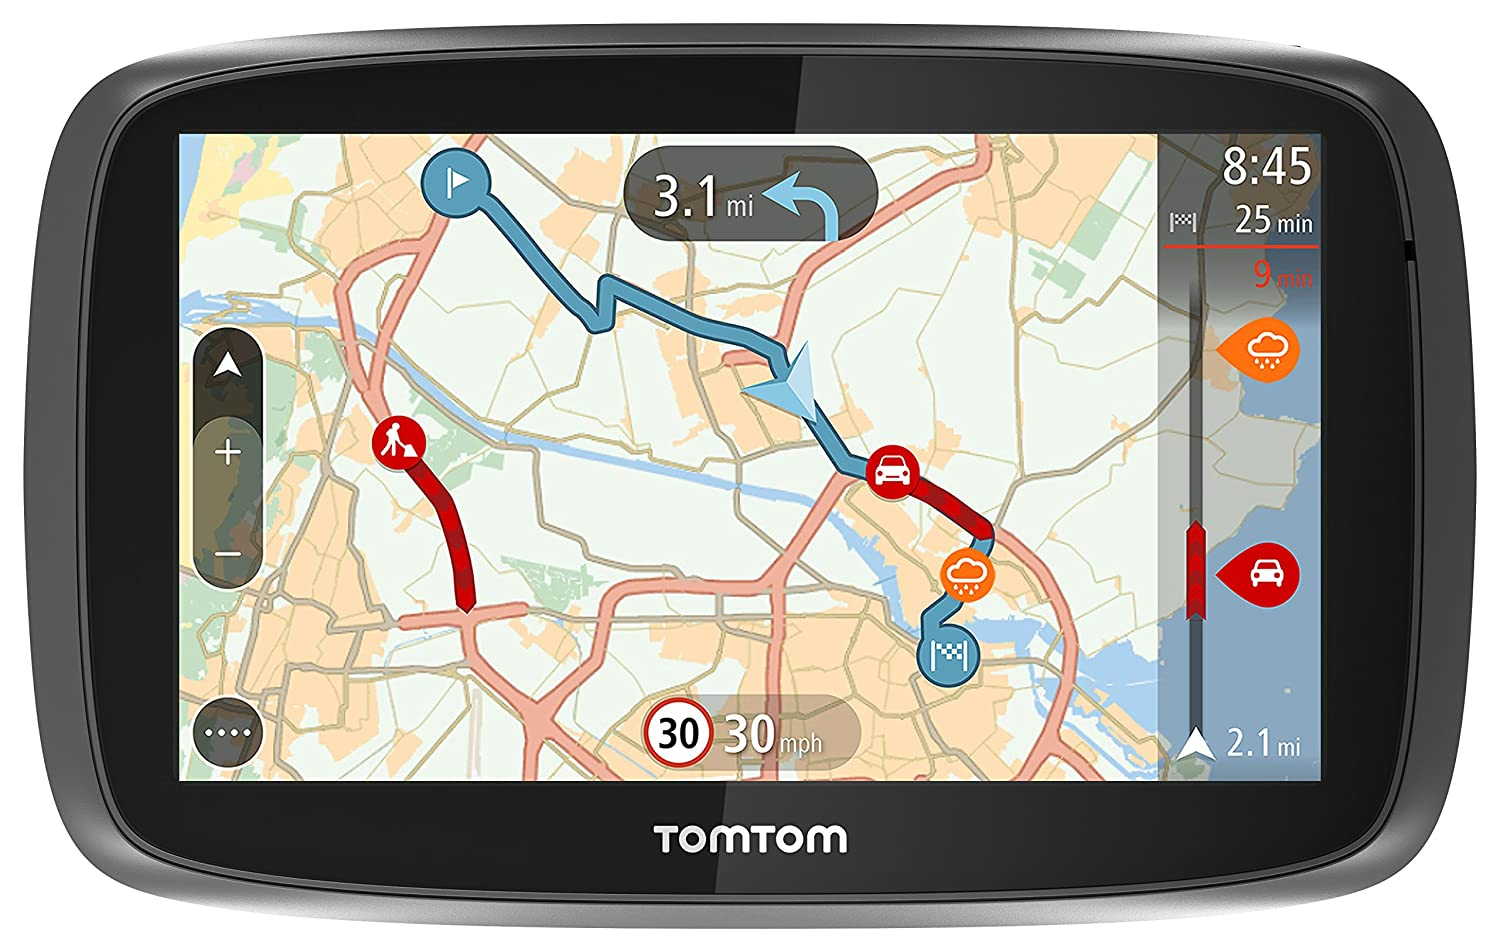 Tomtom Chinese Voice Downloads